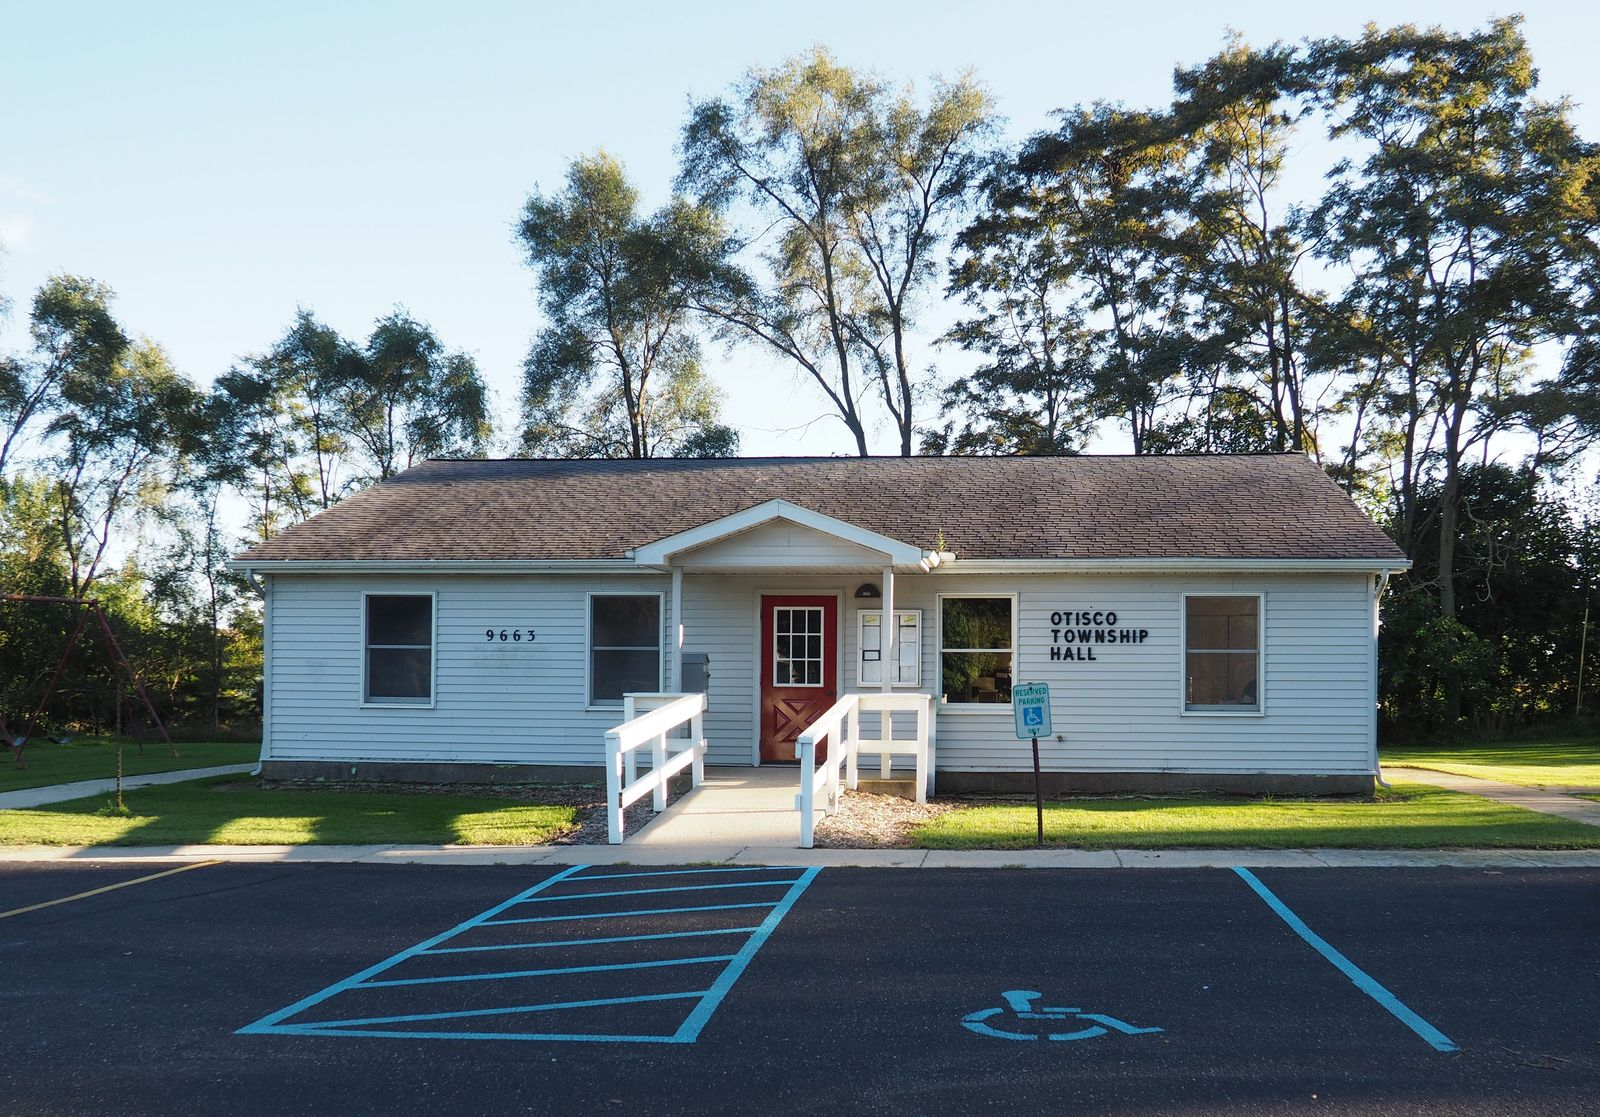 Otisco Township Hall (12 Sep 2016)